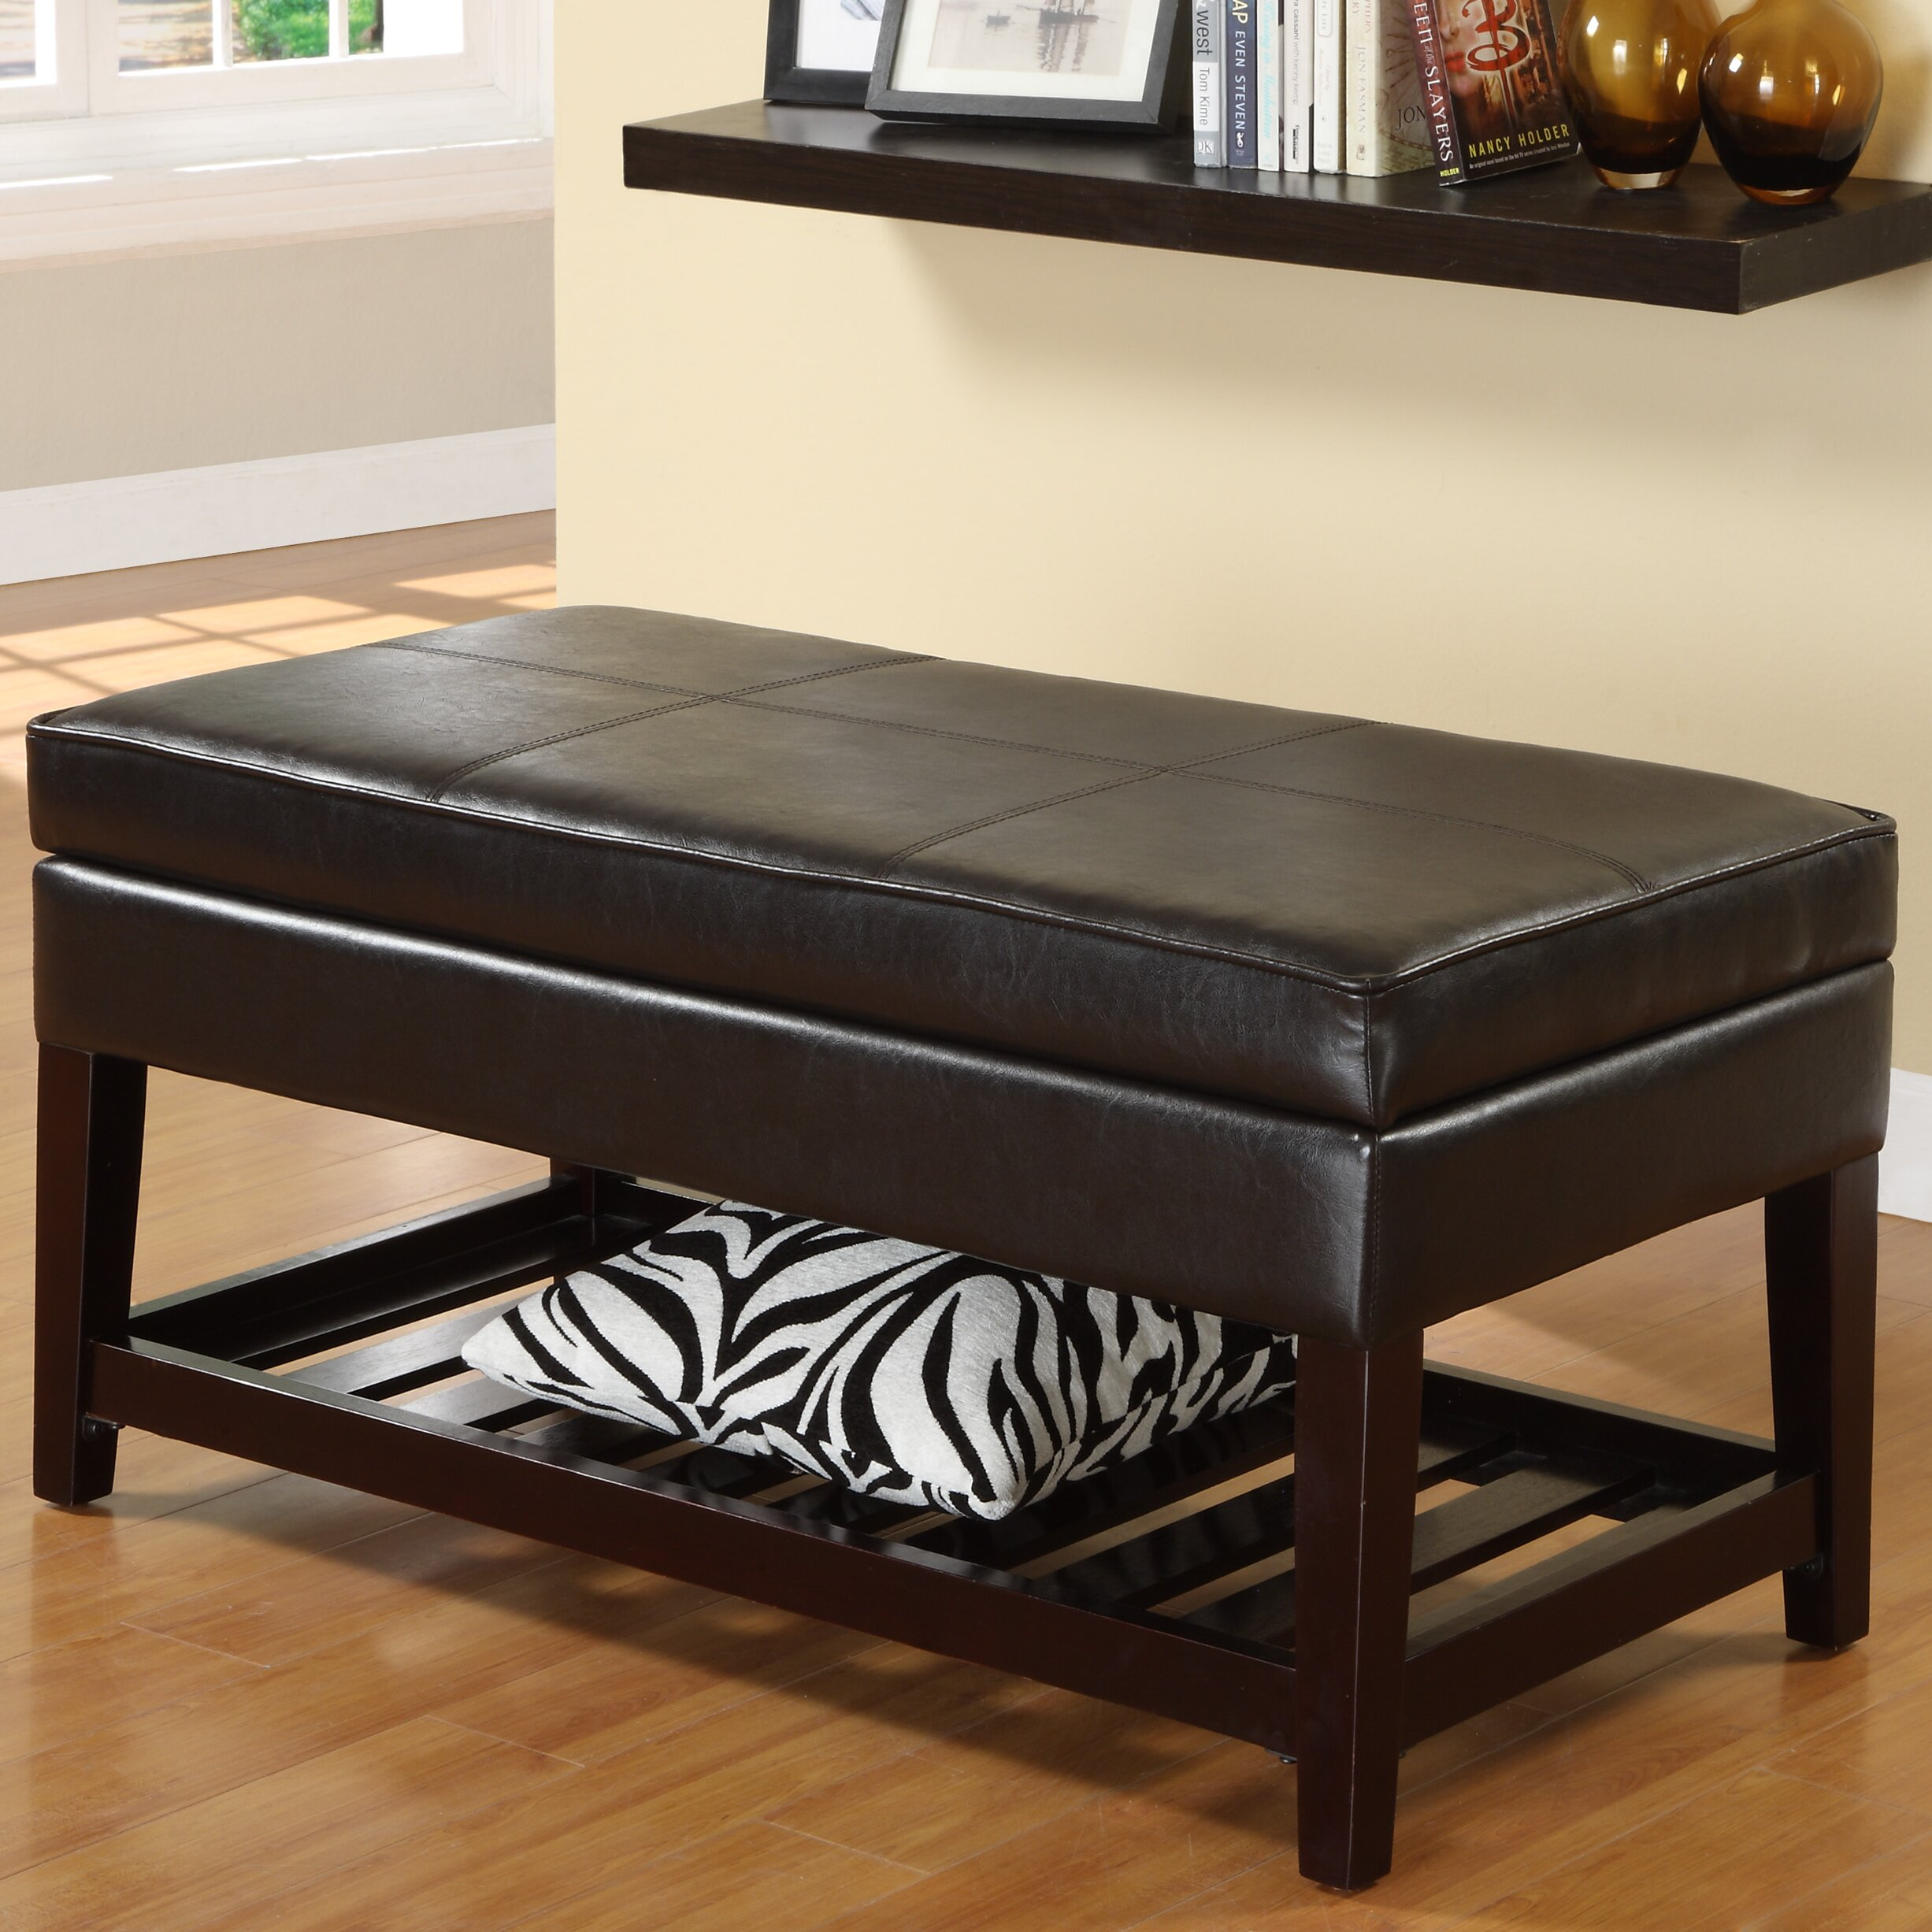 Entryway Bedroom Shoe Storage Organizer Ottoman Bench New: Hokku Designs Ramon One Seat Bench With Storage & Reviews